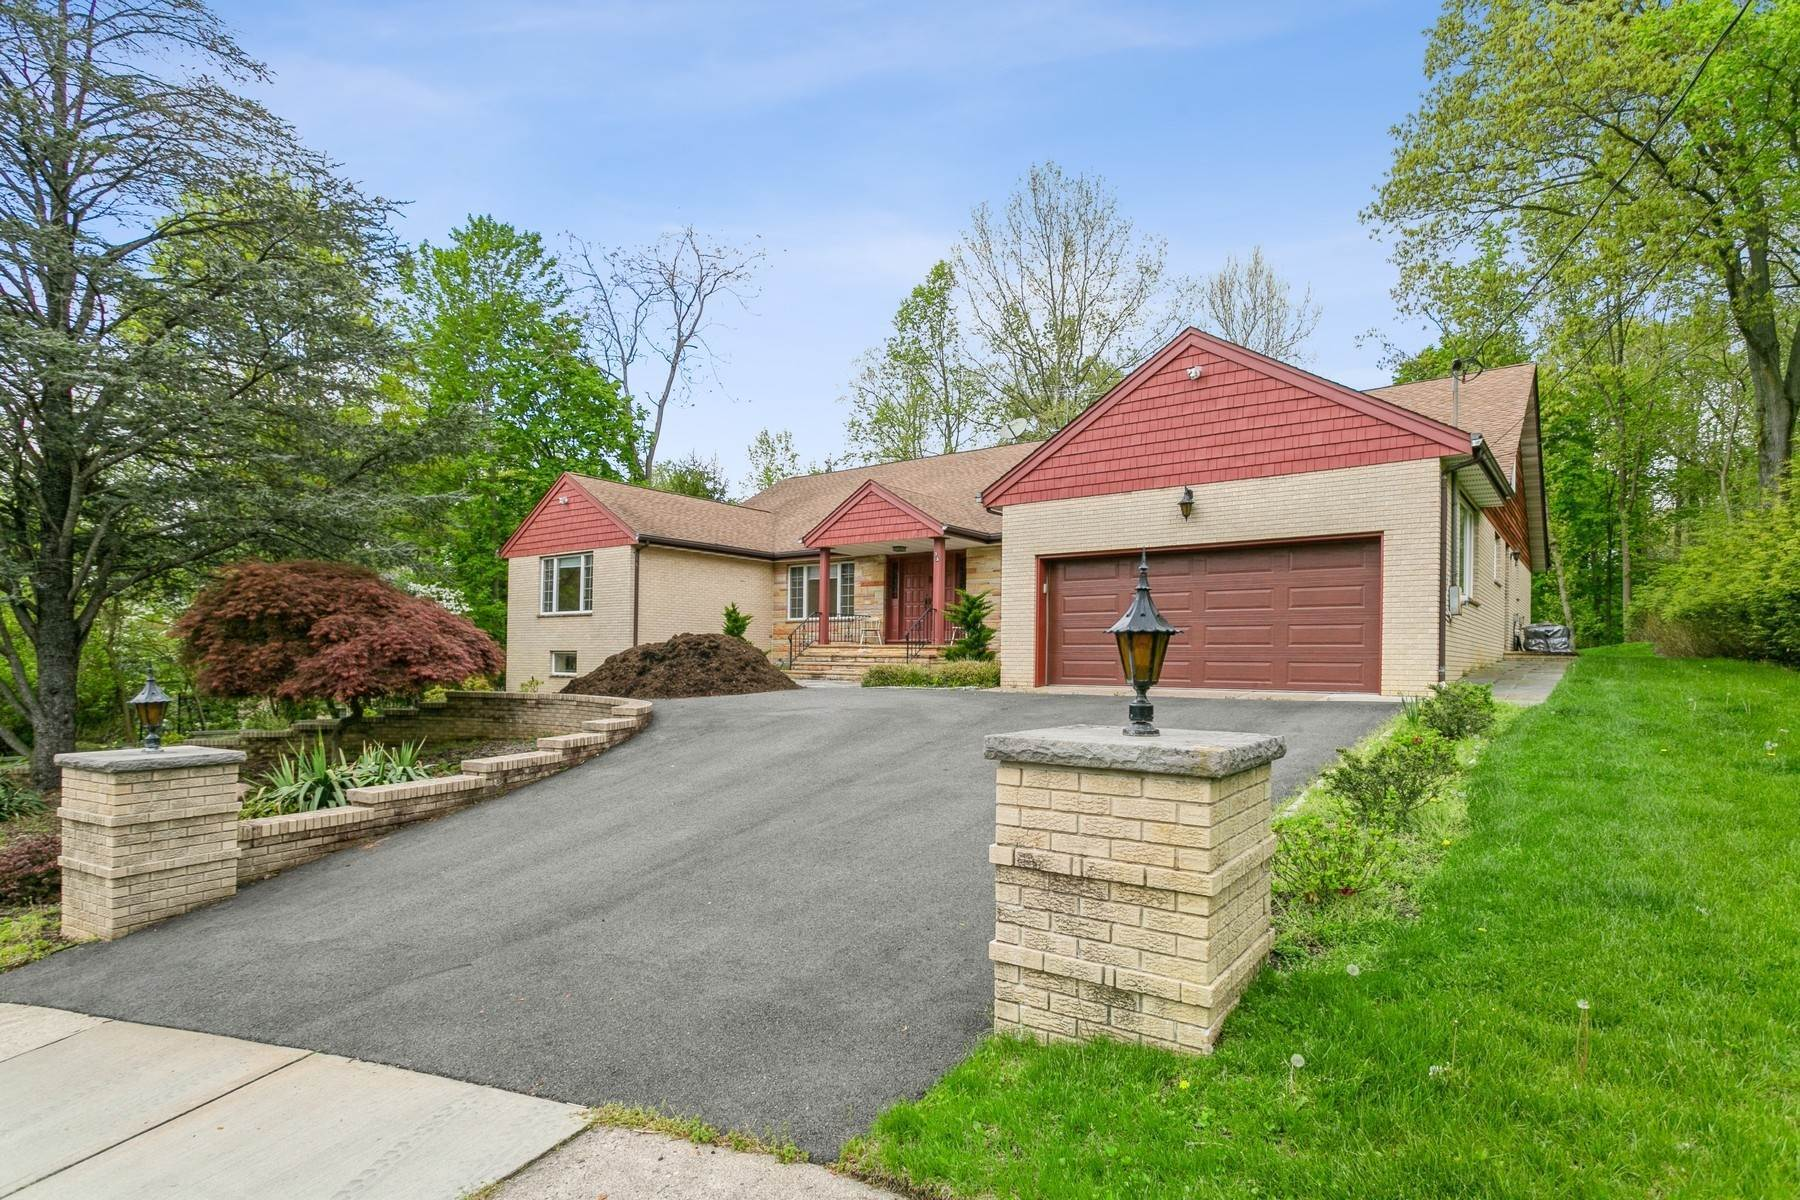 Single Family Homes for Sale at East Hill 75 Bowers Ln Closter, New Jersey 07624 United States